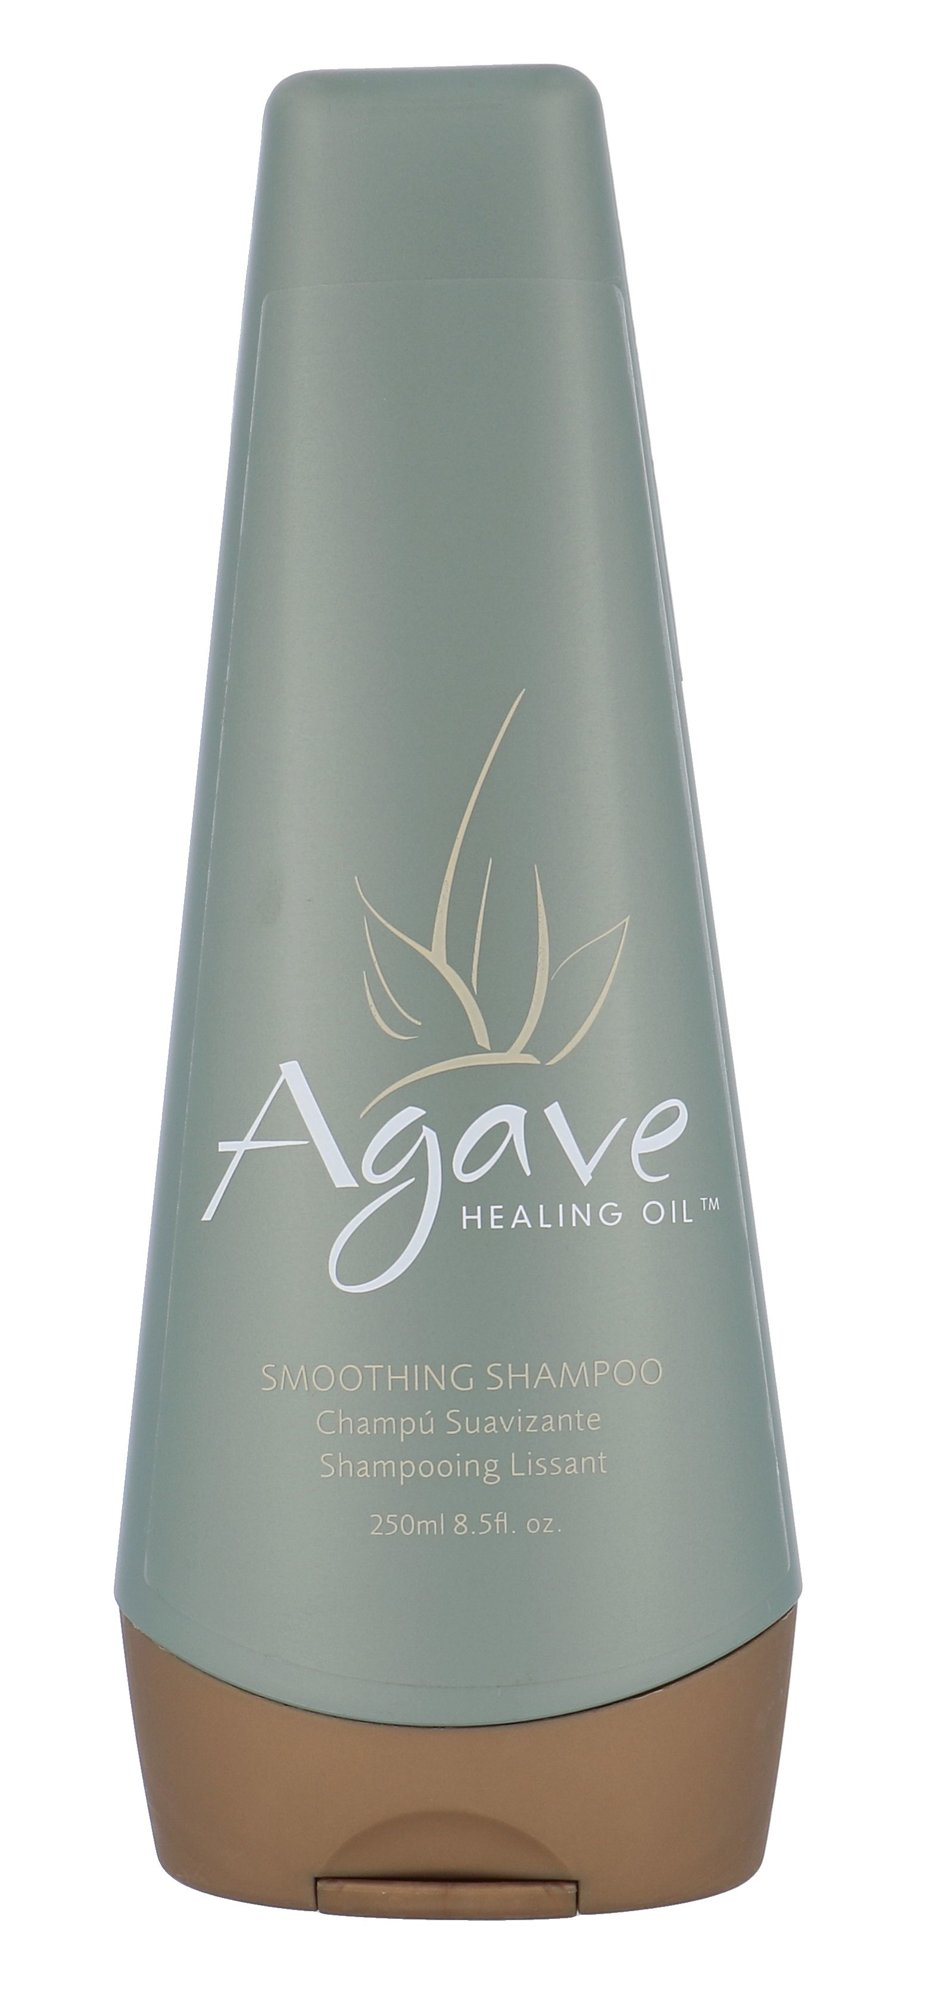 Bio Ionic Agave Cosmetic 250ml  Smoothing